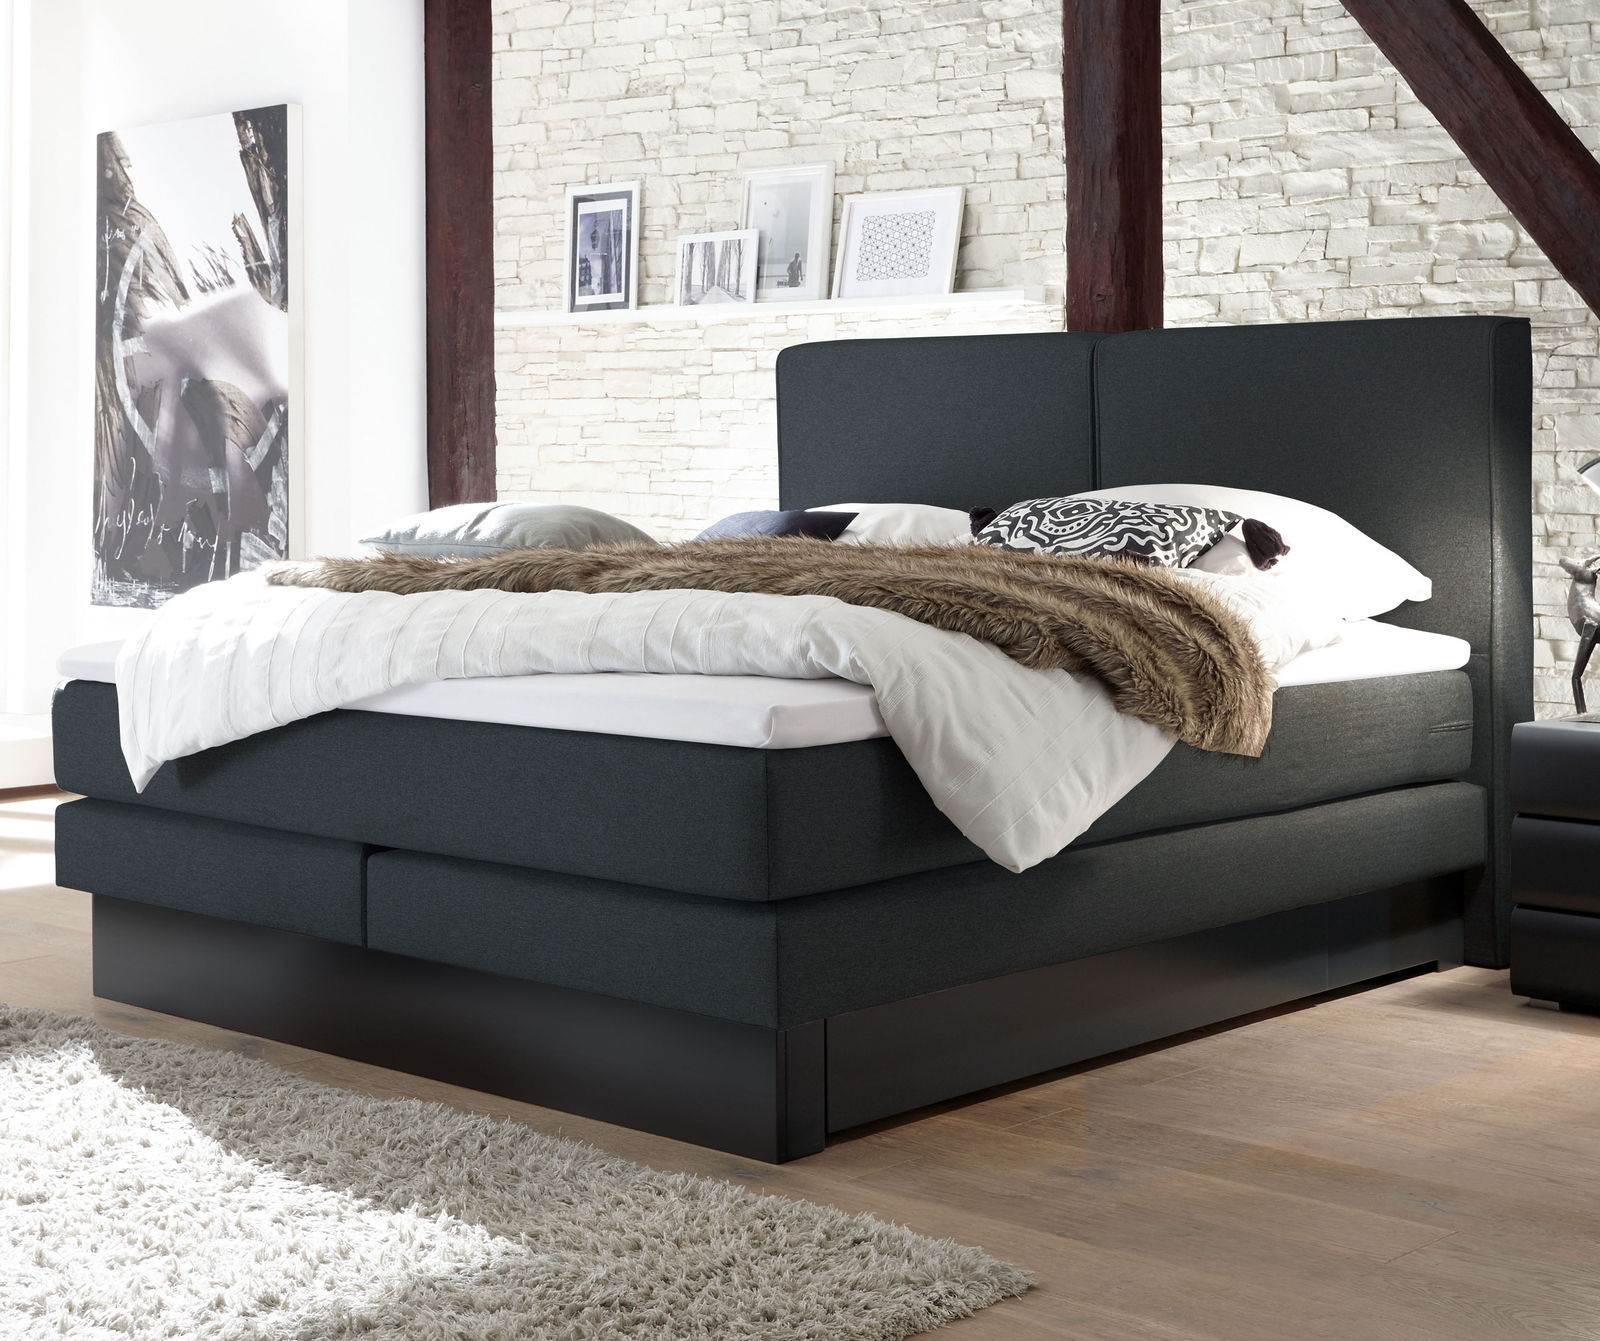 boxspringbett mit bettkasten und weichem velours bezug. Black Bedroom Furniture Sets. Home Design Ideas